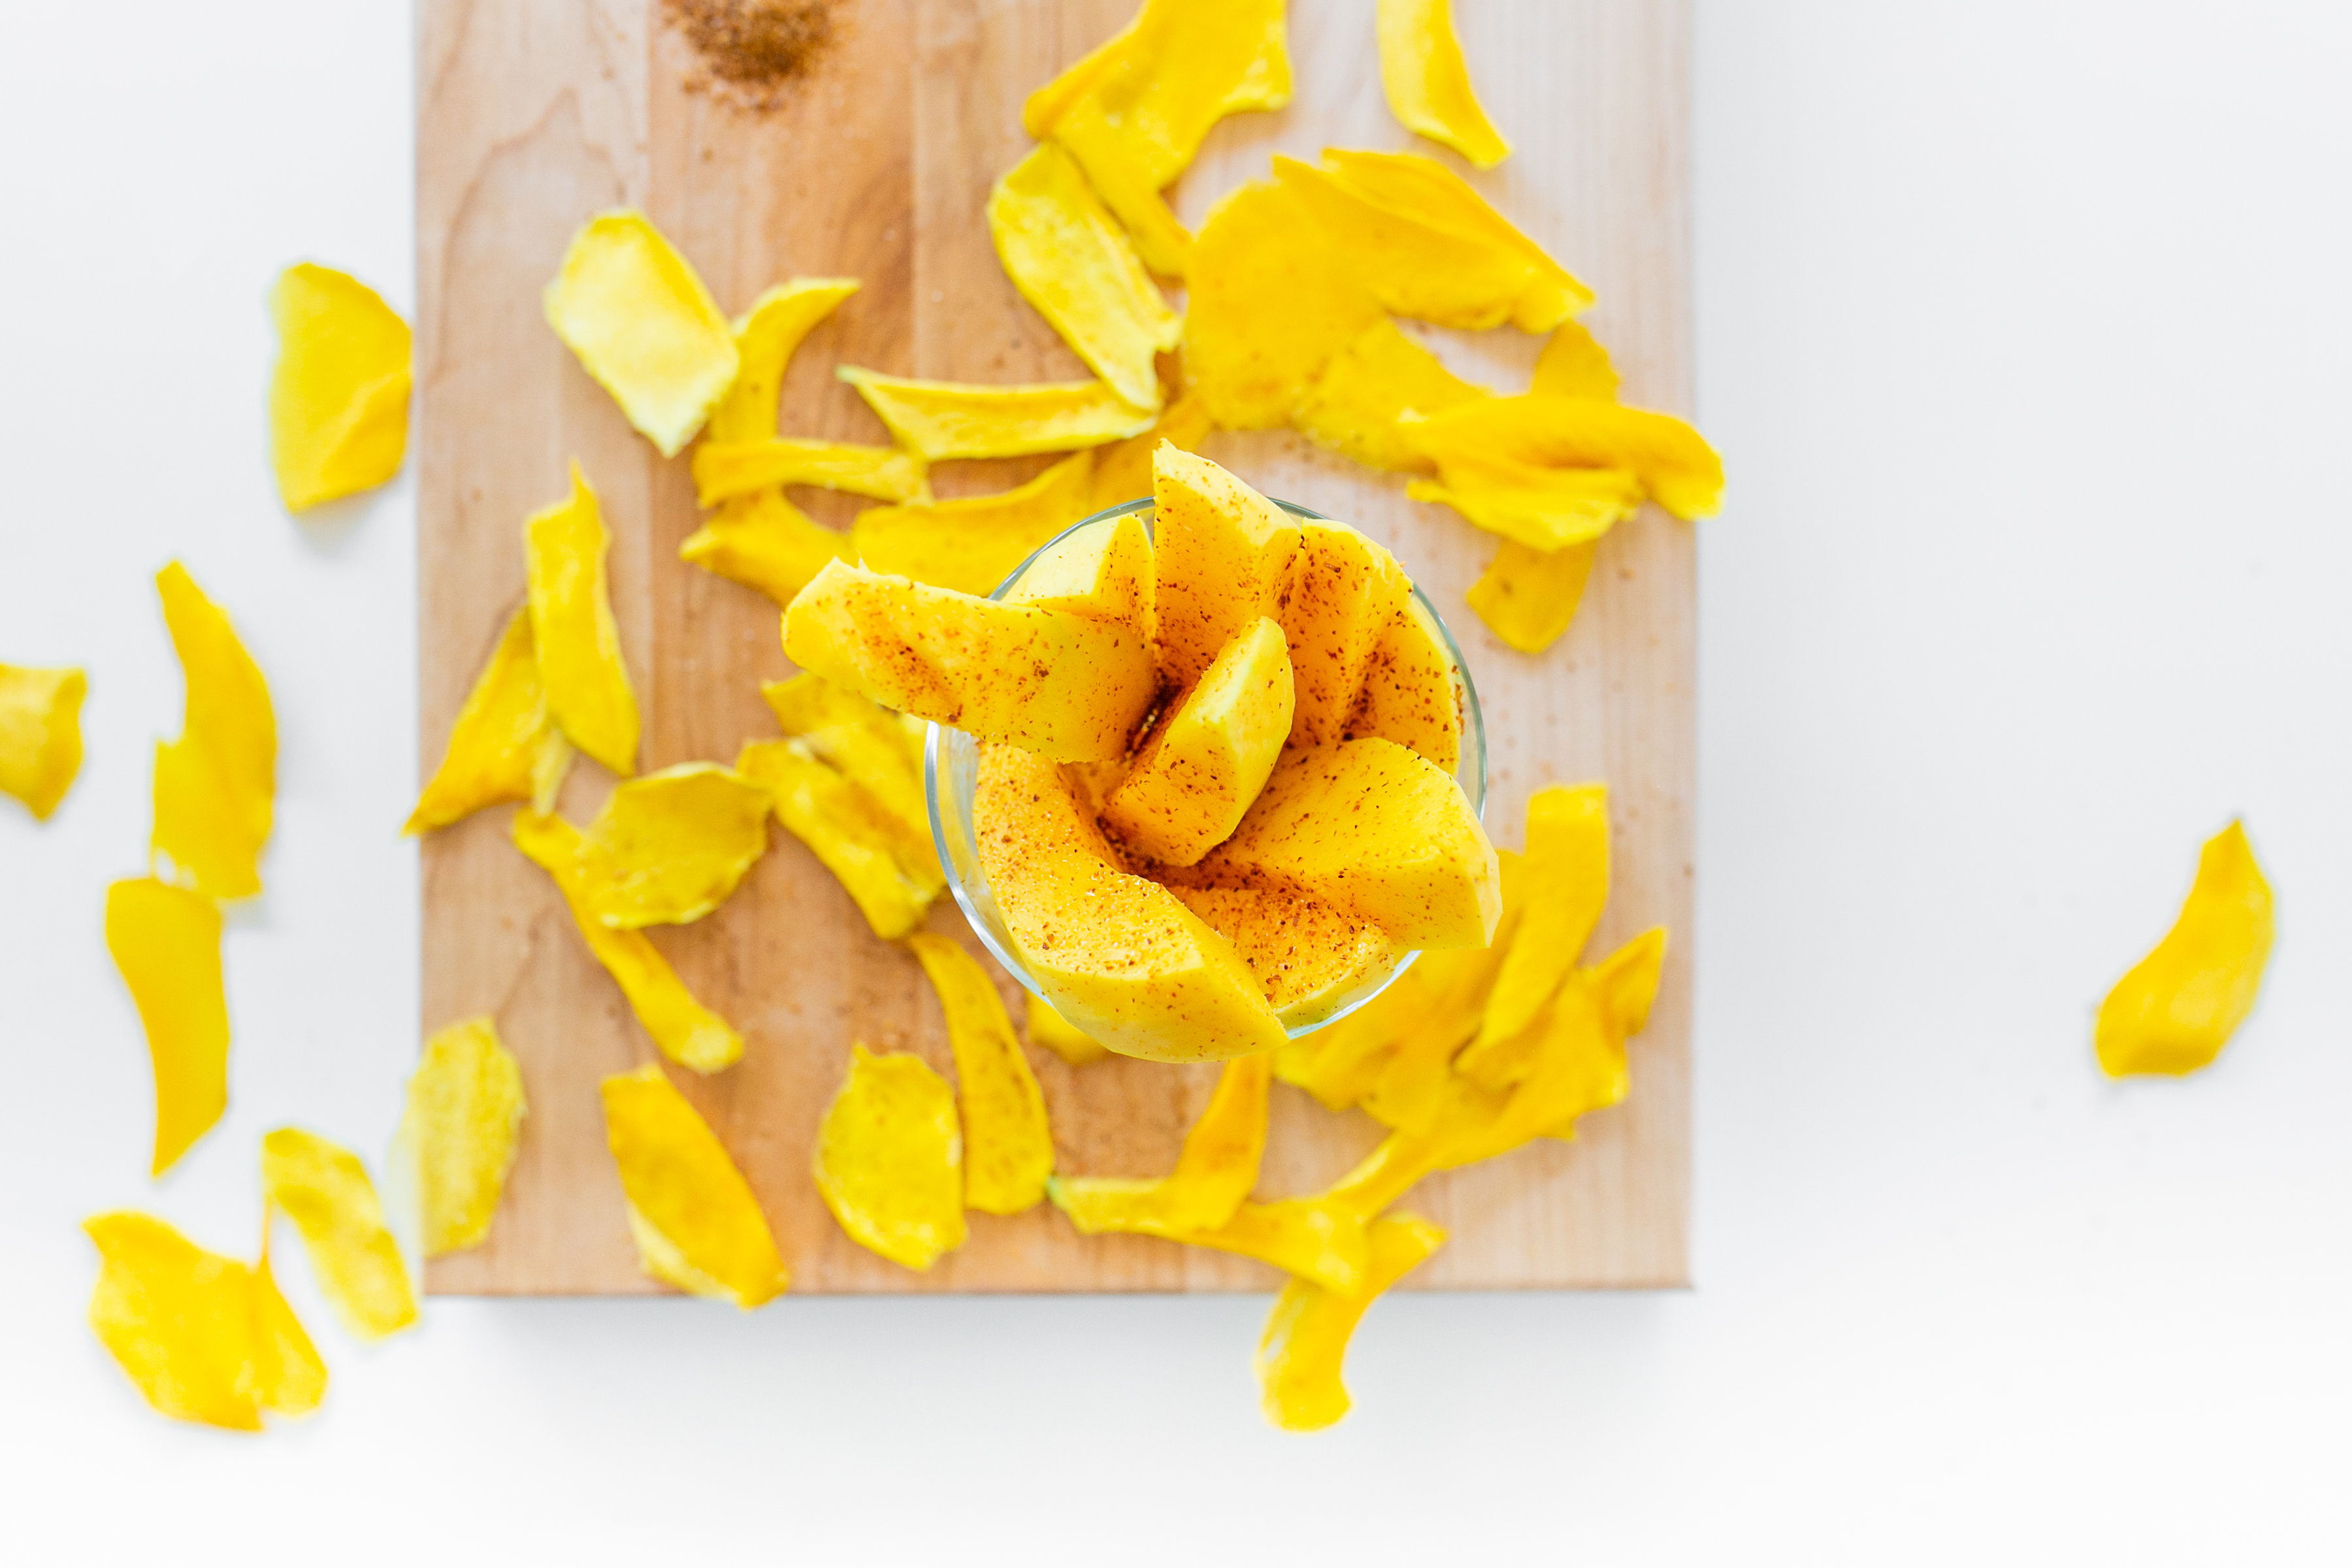 Call Me Lore's Healthy Easy Dehydrated Food Recipes Healthy Snacks for Kids Homemade Dried Mango